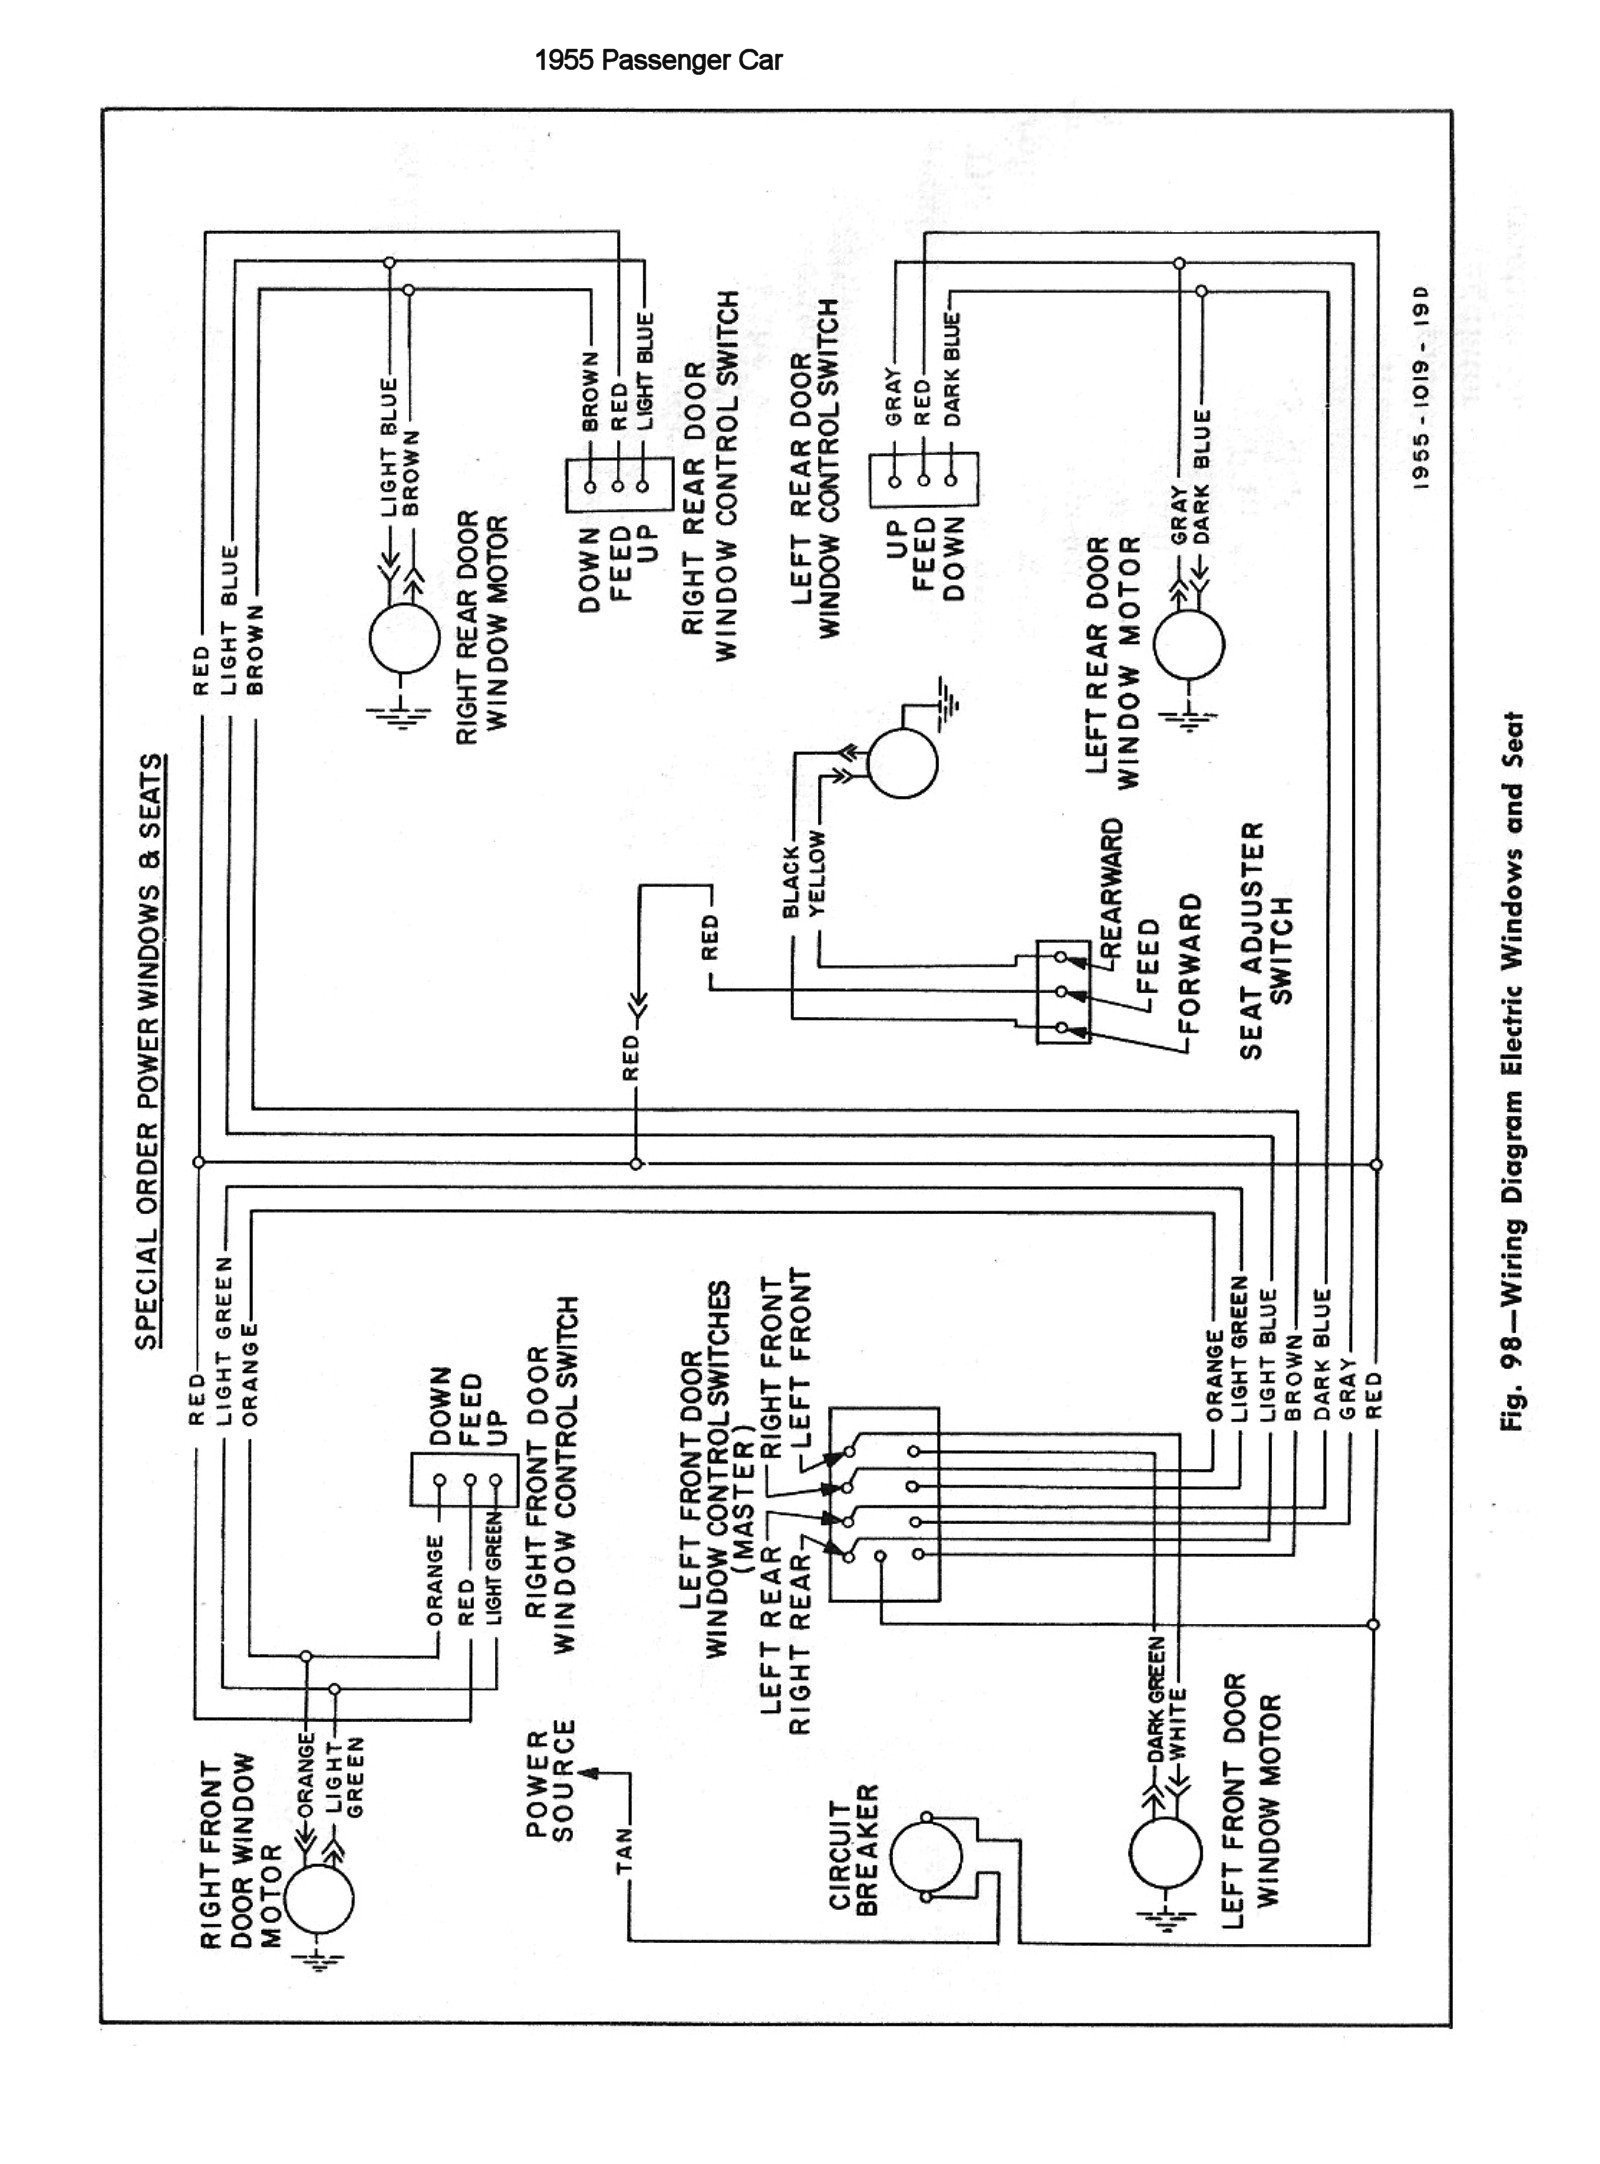 Incredible Chevy Wiring Diagrams Wiring Cloud Ittabpendurdonanfuldomelitekicepsianuembamohammedshrineorg